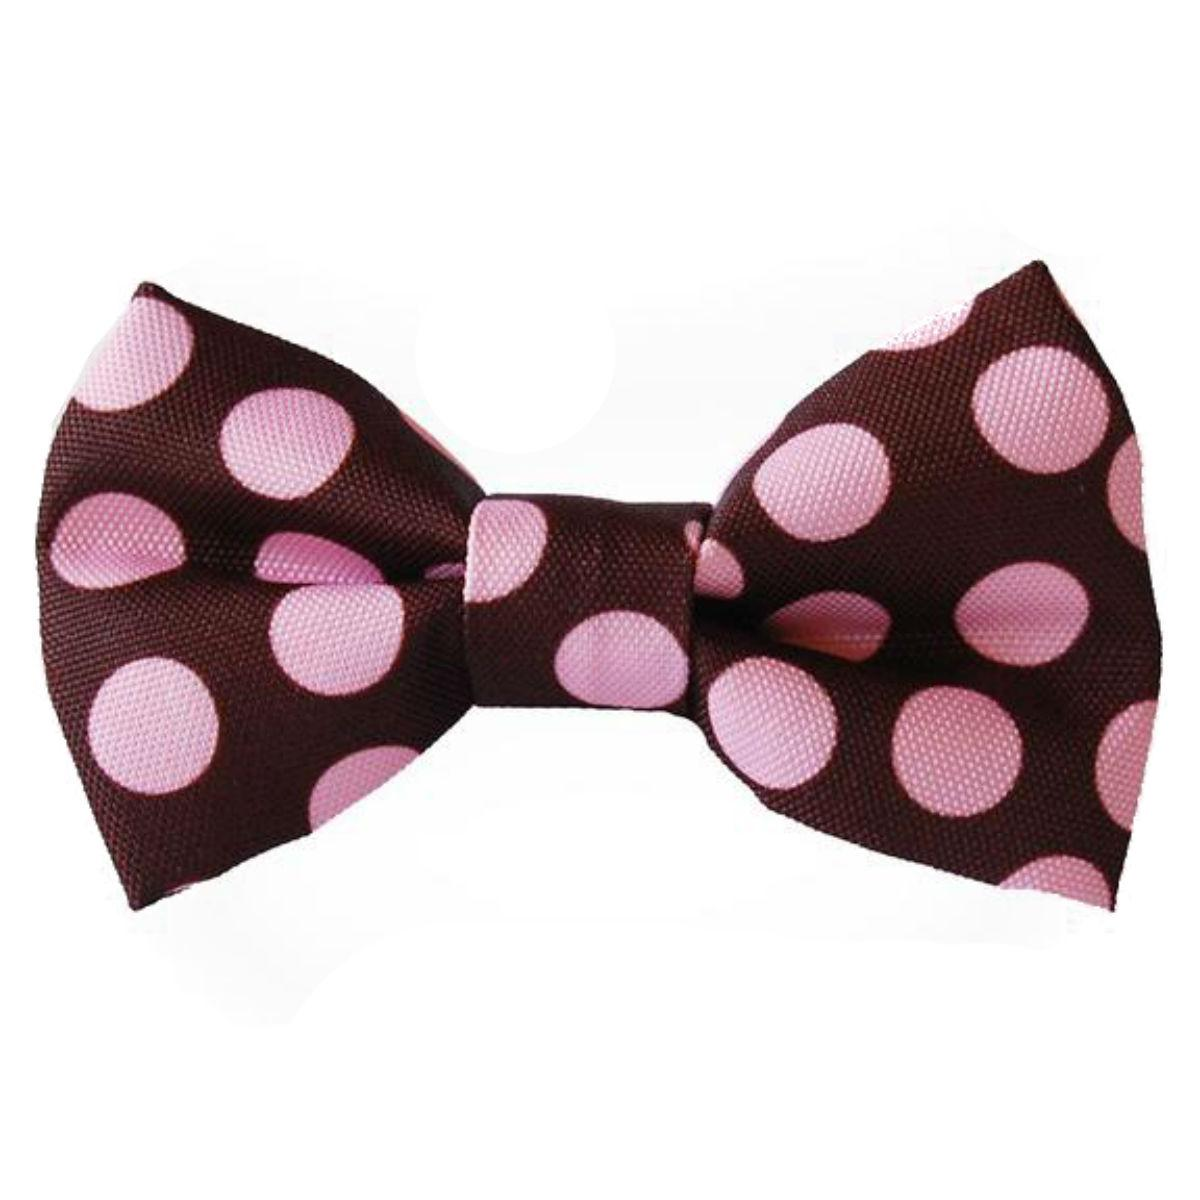 WaLk-e-Woo Bow Tie Dog Collar Attachment - Pink on Brown Dot